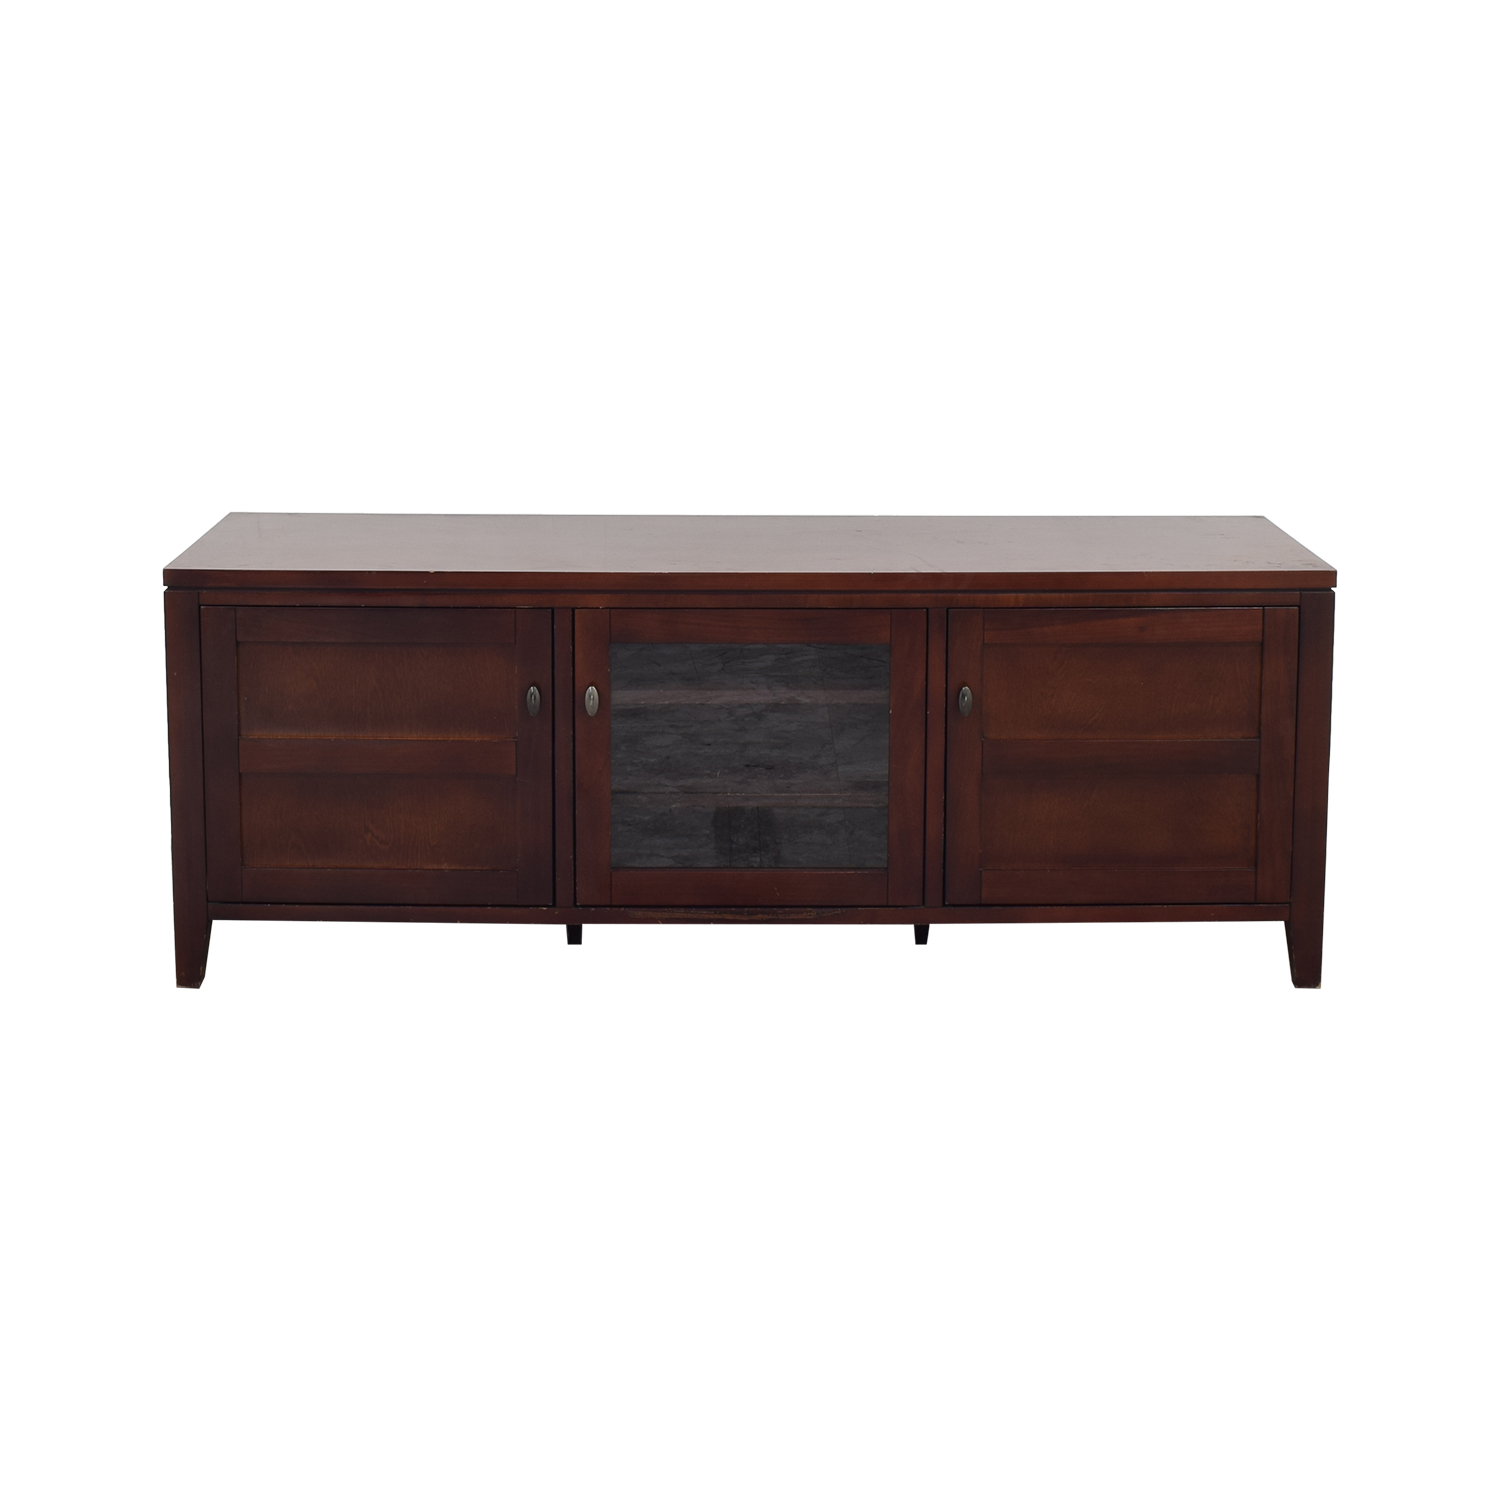 Crate & Barrel Crate & Barrel Media Console with Cabinets nyc